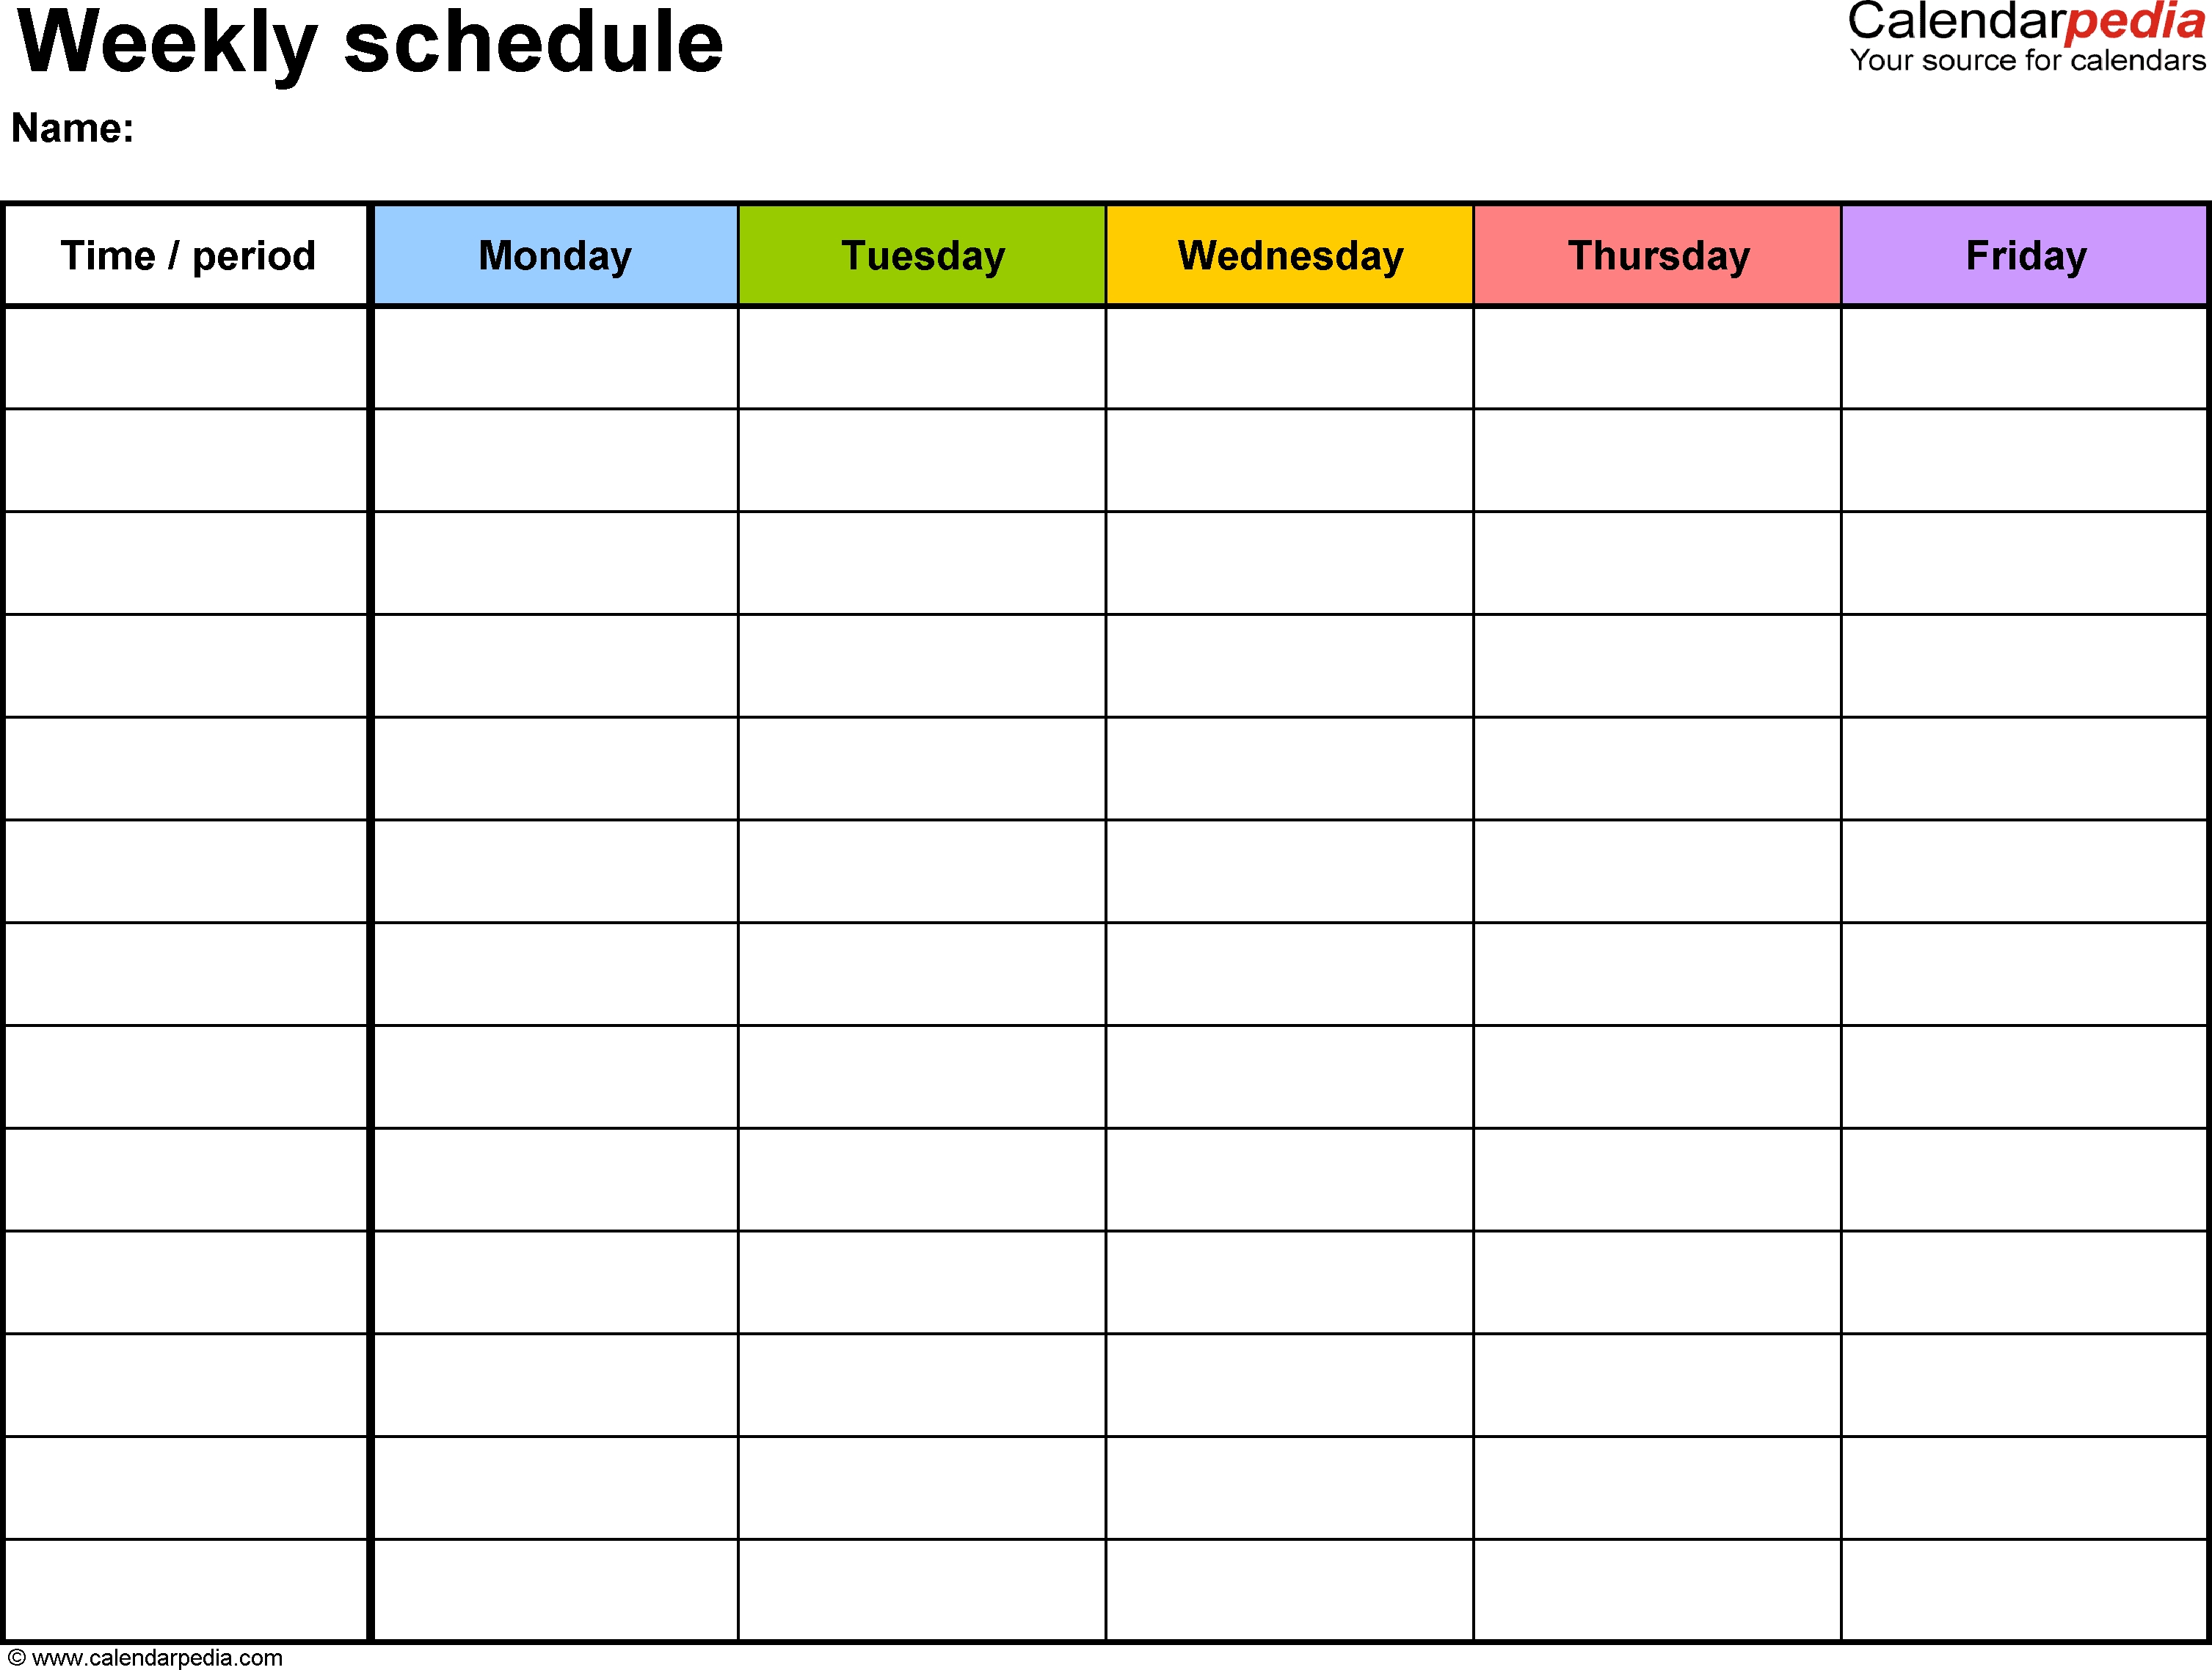 Free Weekly Schedule Templates For Word - 18 Templates throughout Weekly Agenda Monday Through Friday